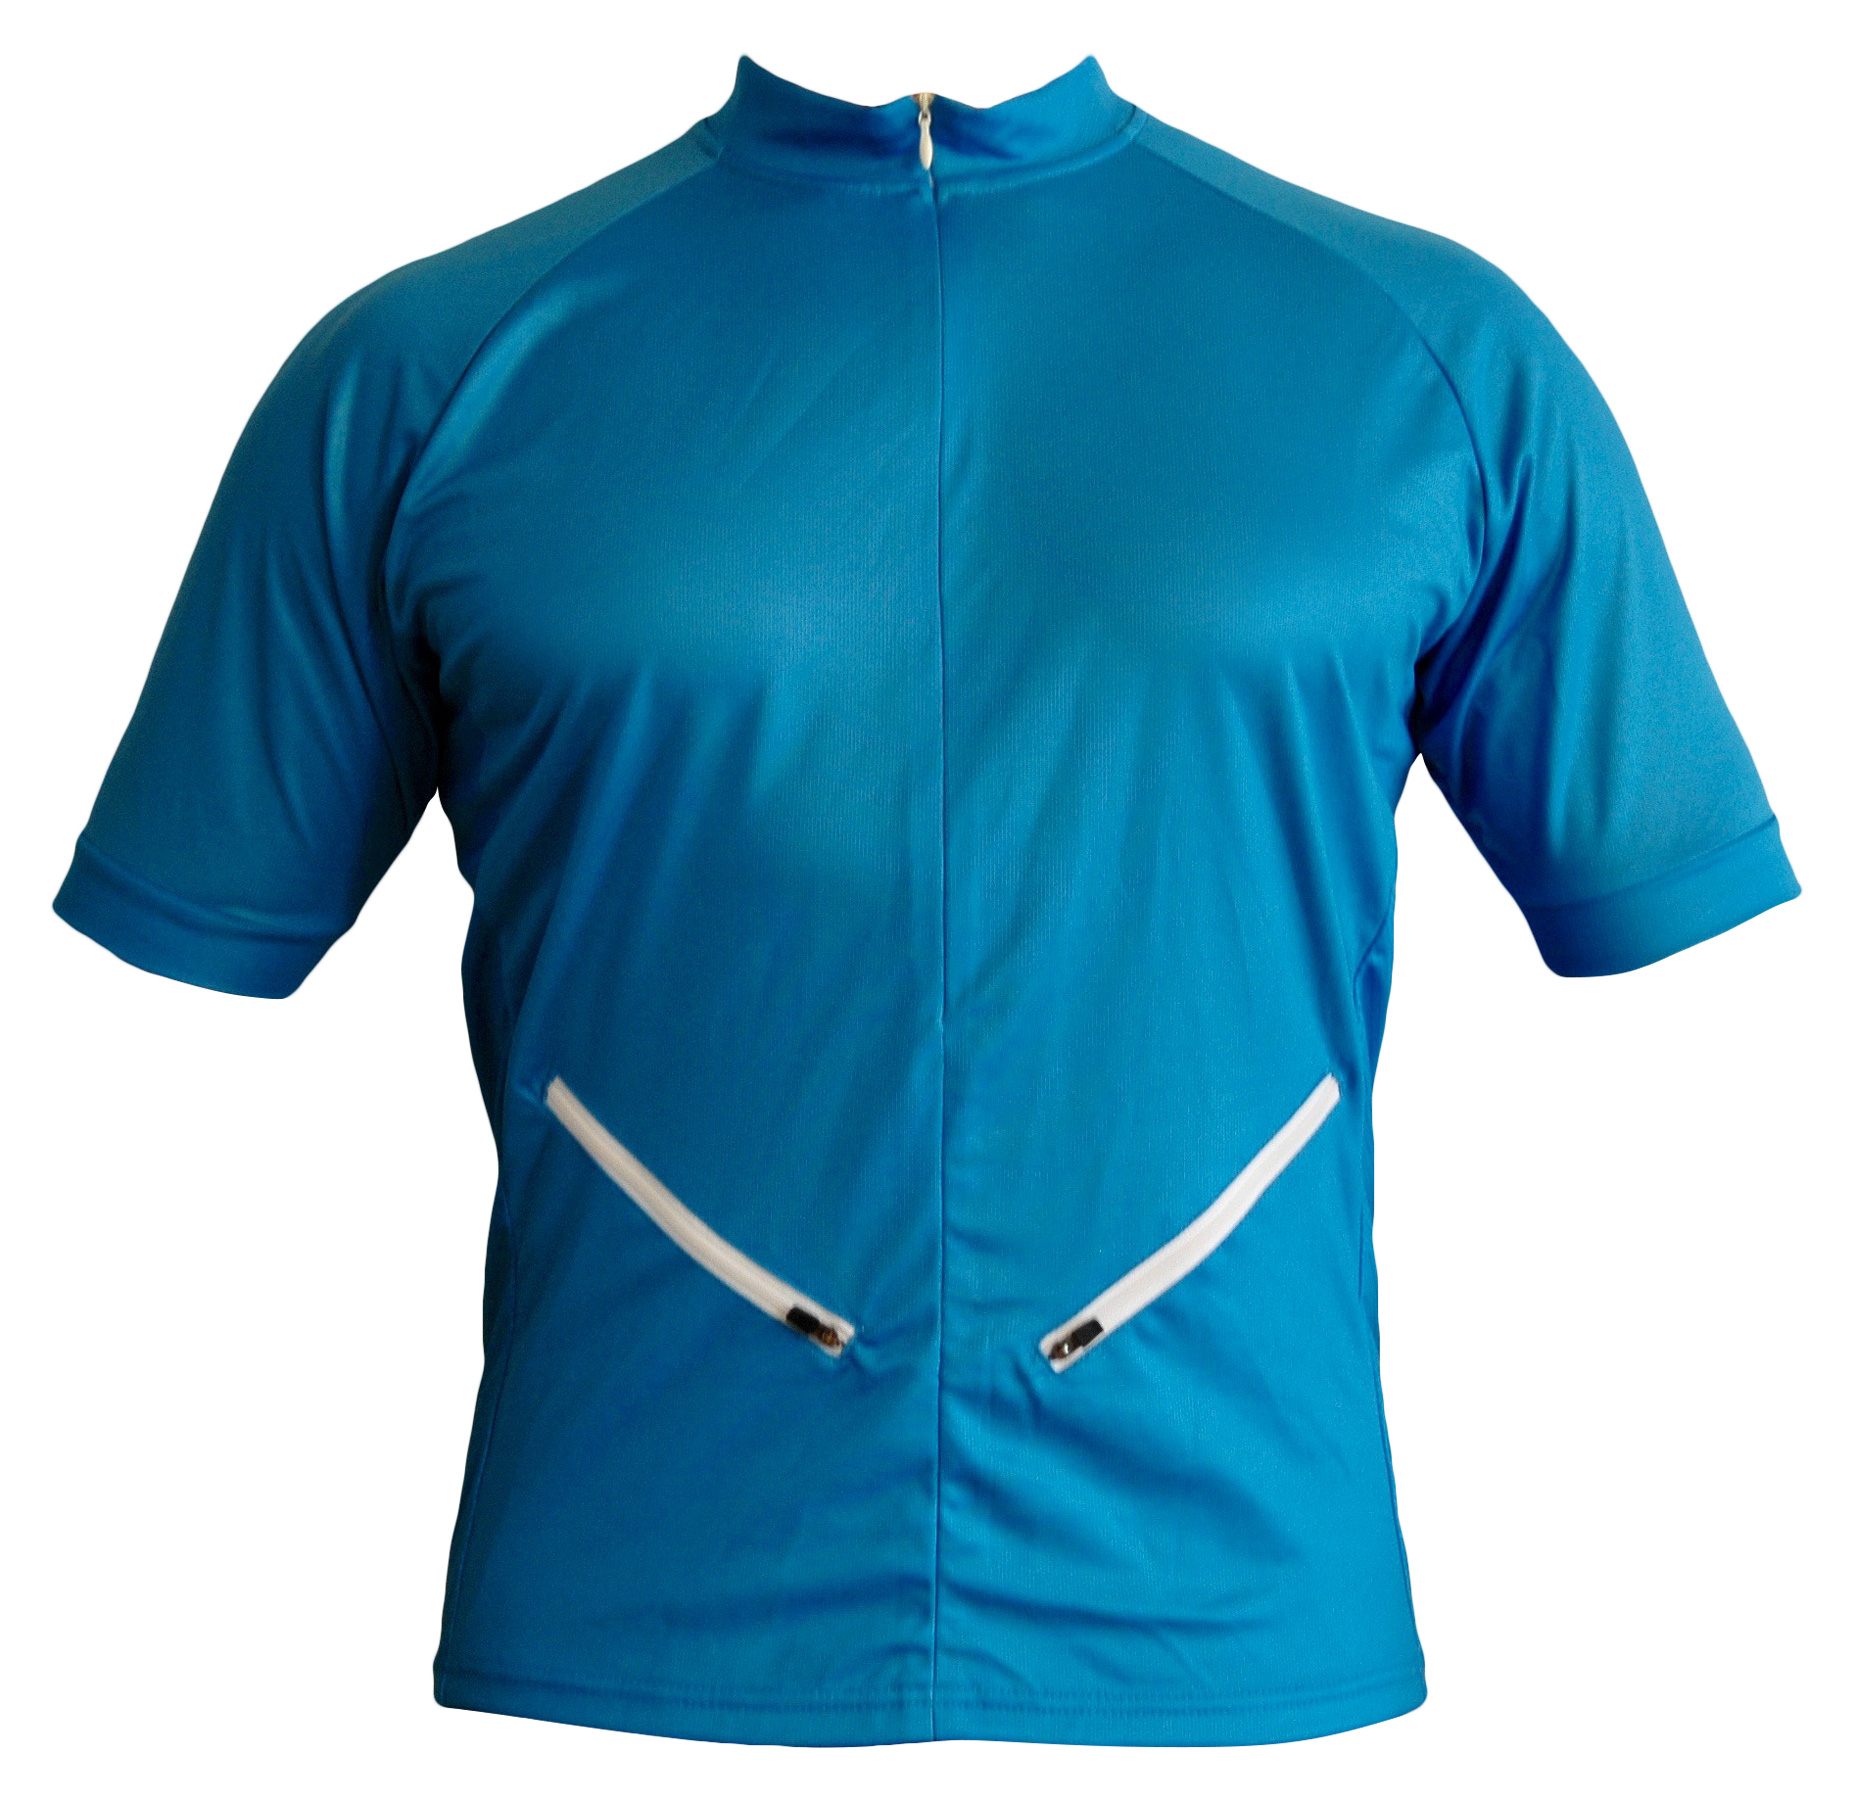 Recumbent Cycle Wear